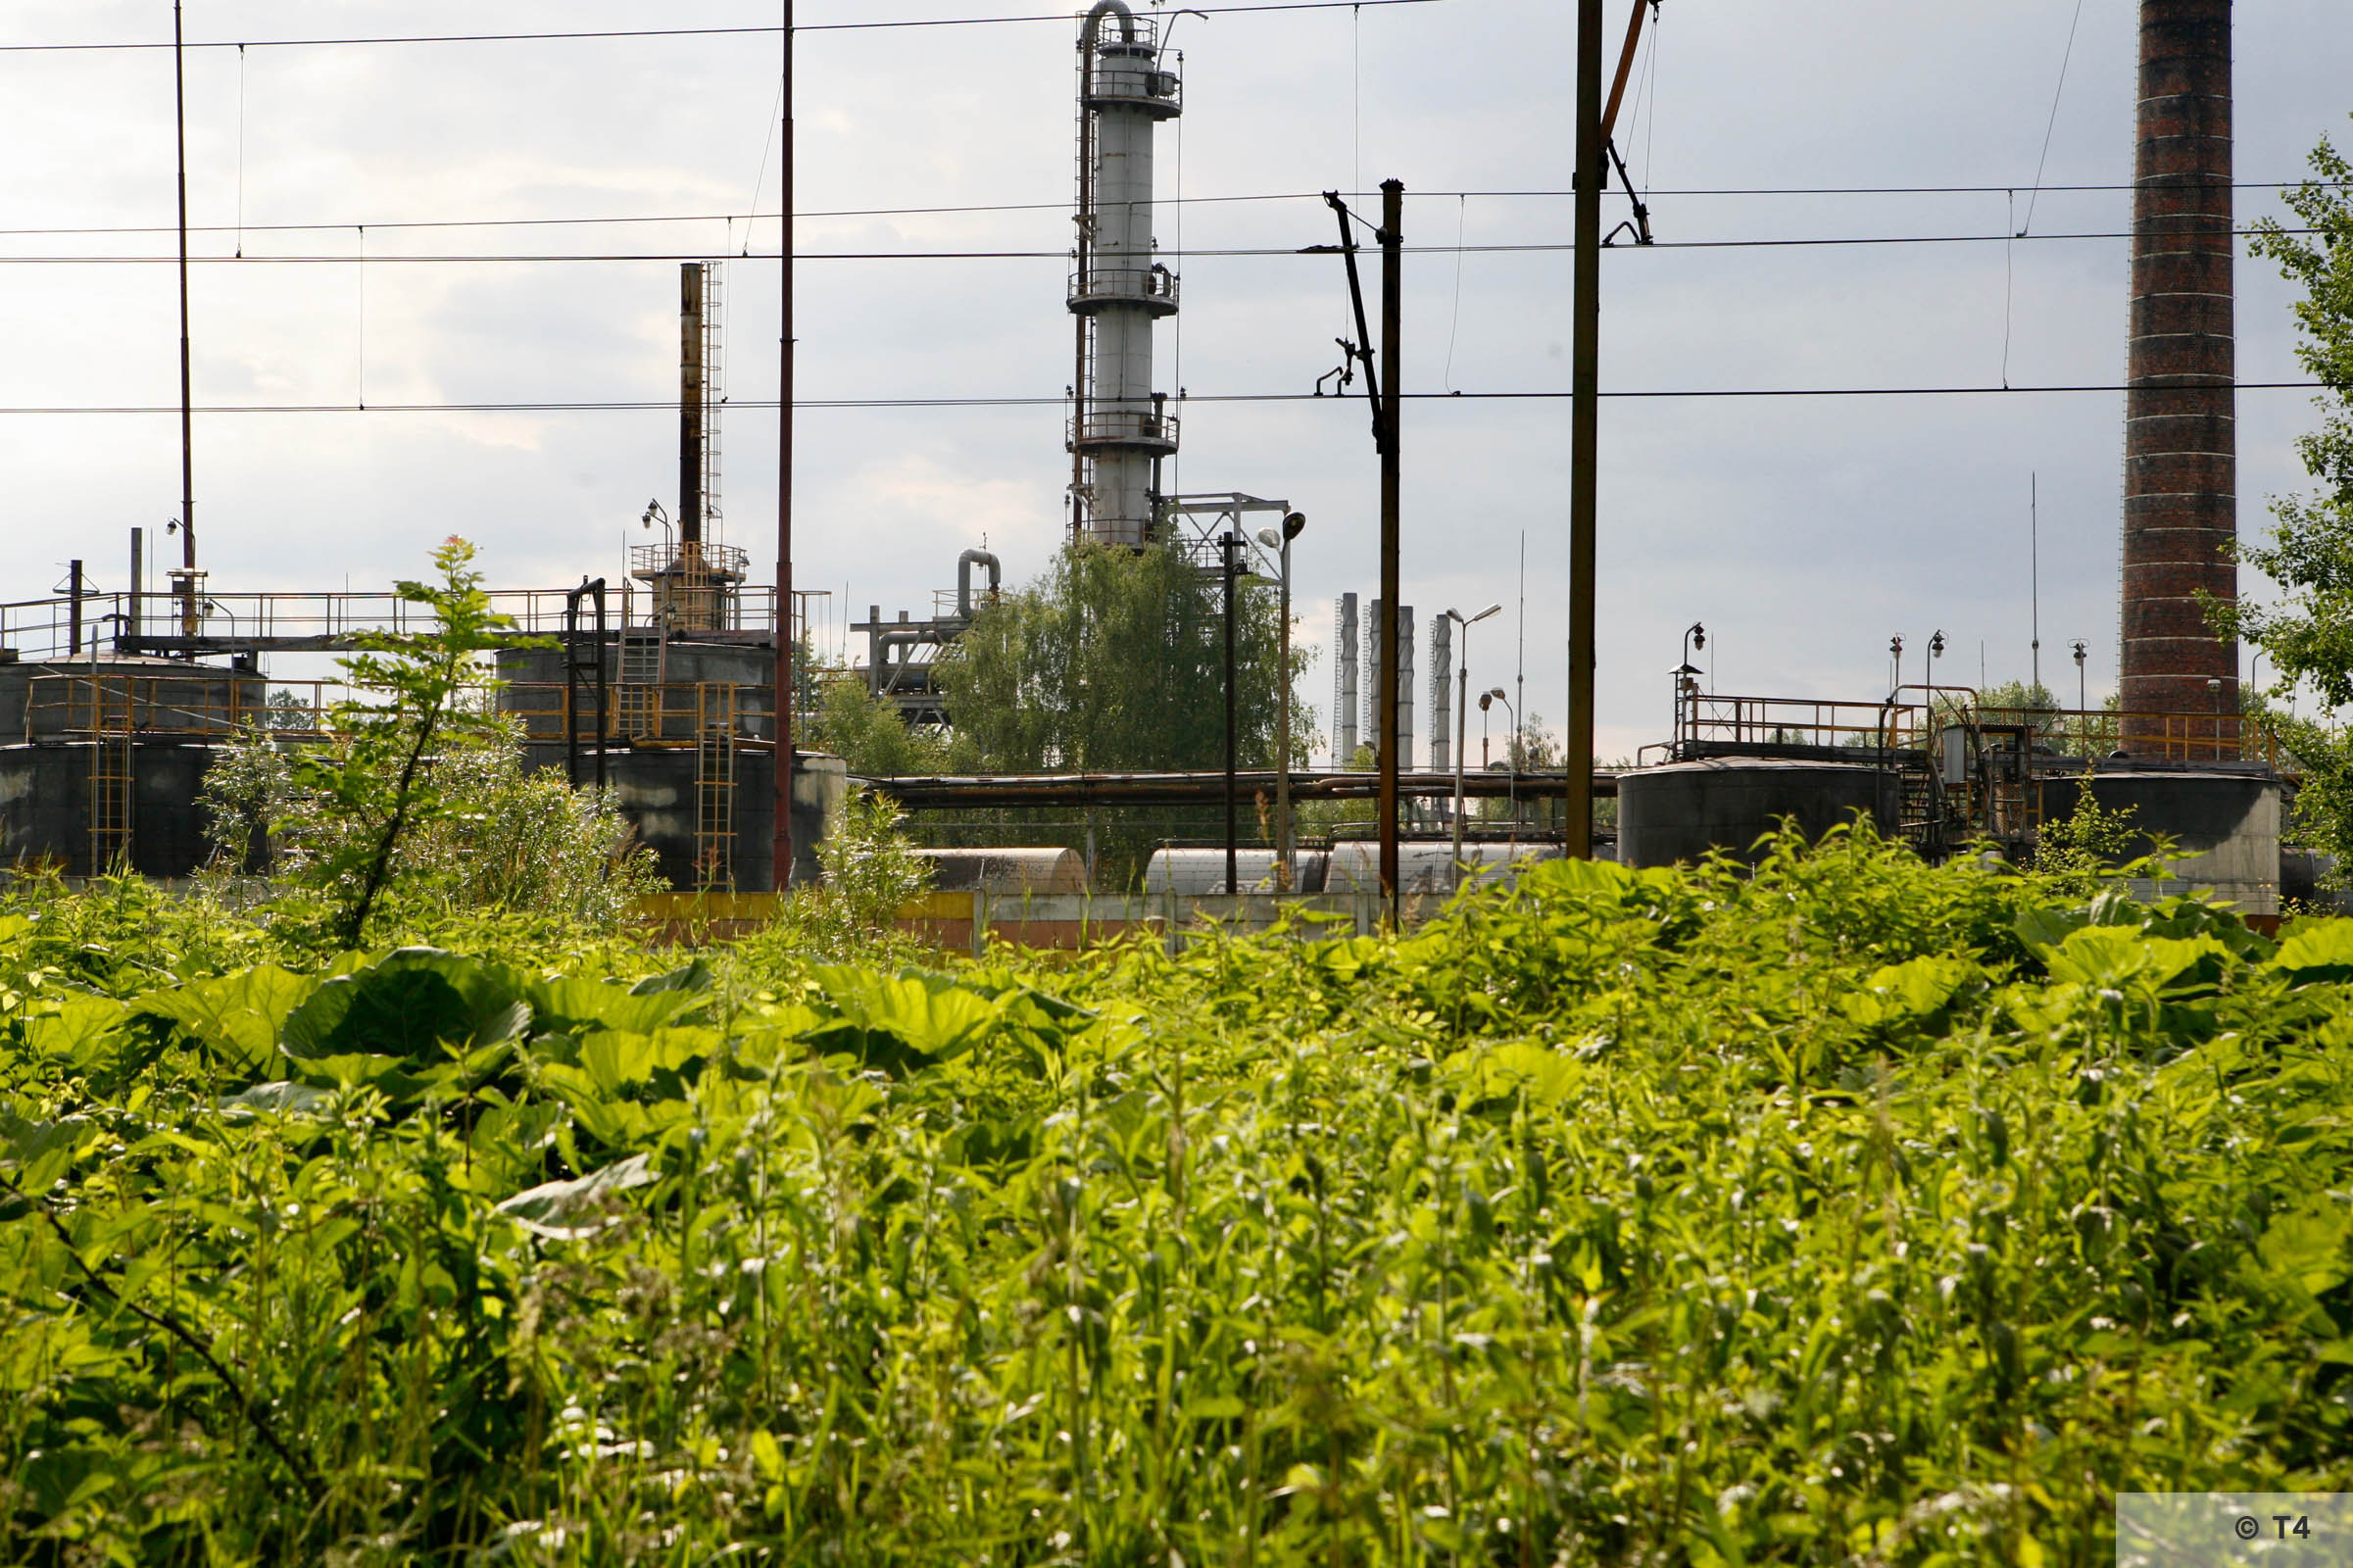 Czechowice refinery from outside the former sub camp. 2006 T4 6733